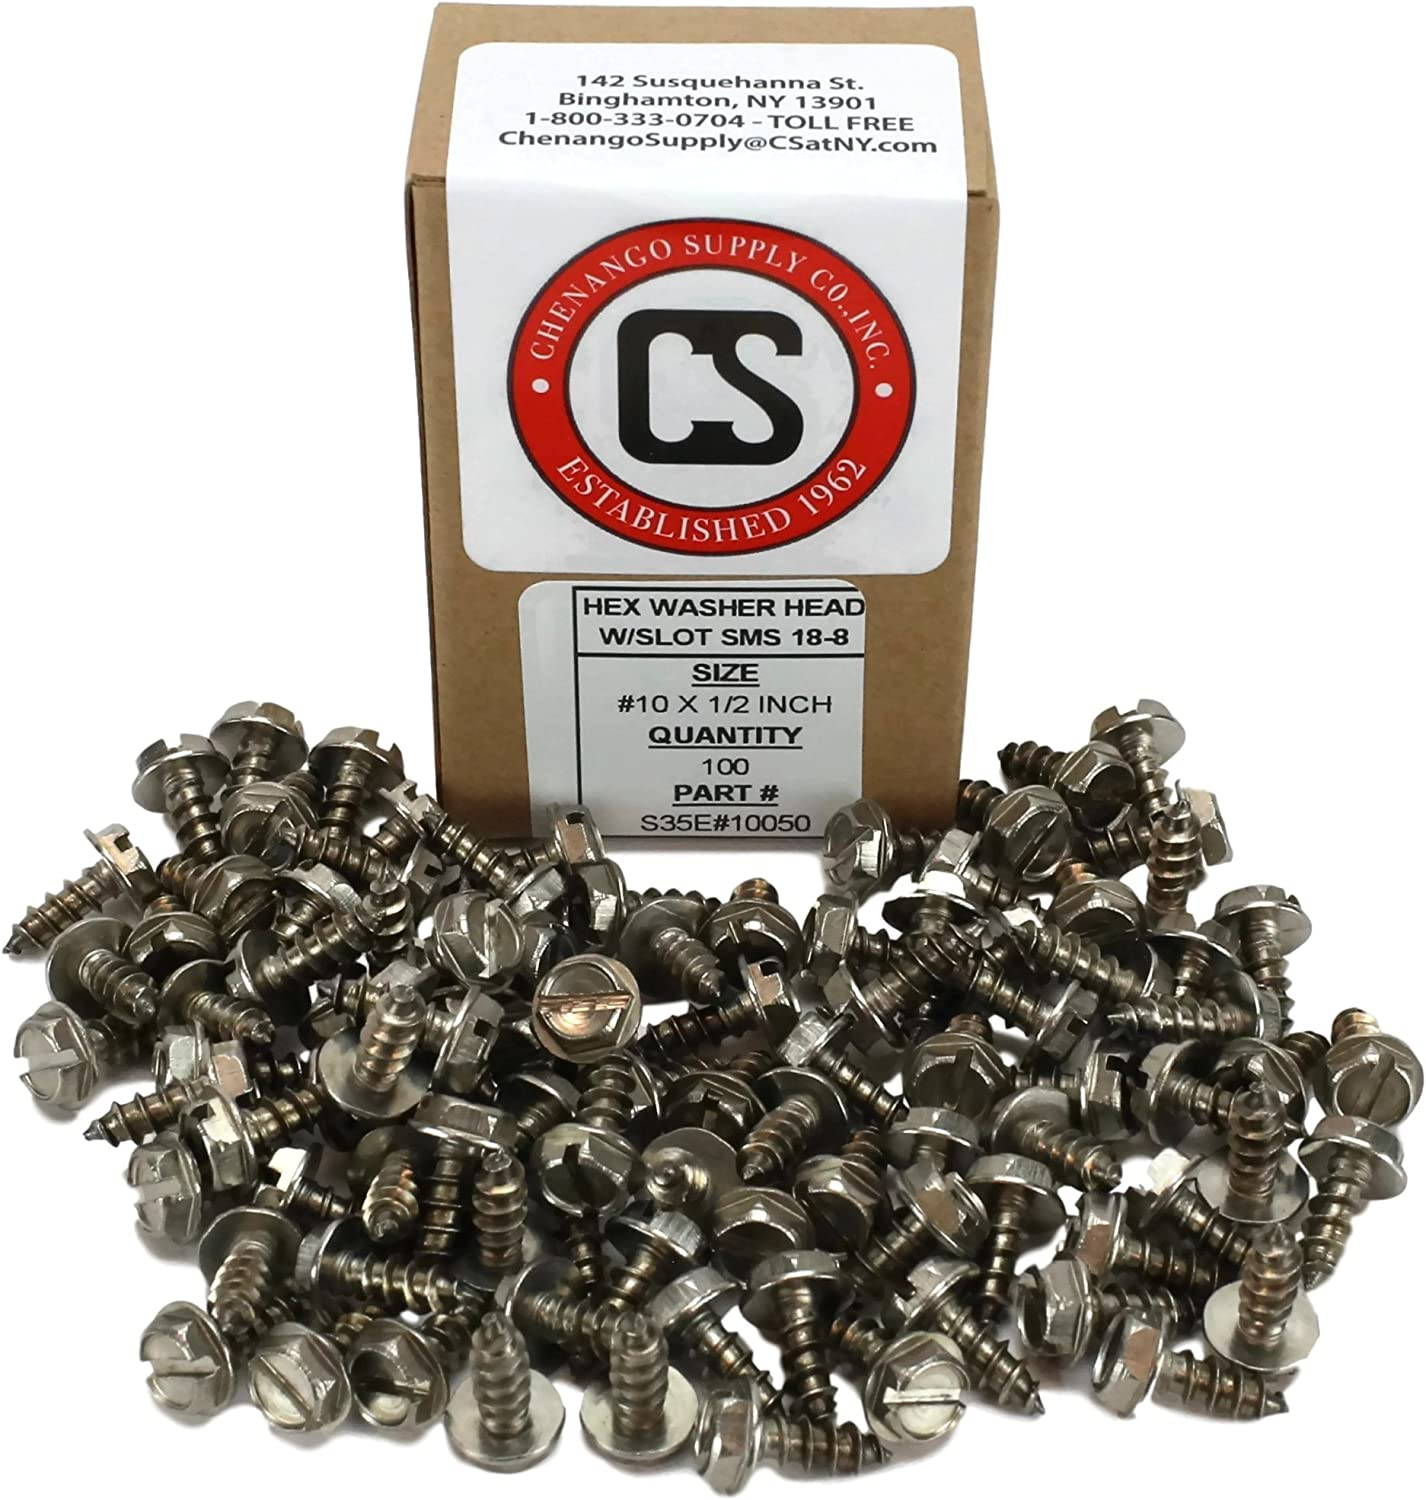 #10 x 1 1//2 Hex Washer Head Slotted Sheet Metal Screw Zinc Plated Set #RD-0898FST Warranity by Pr-Mch pcs Package of 250